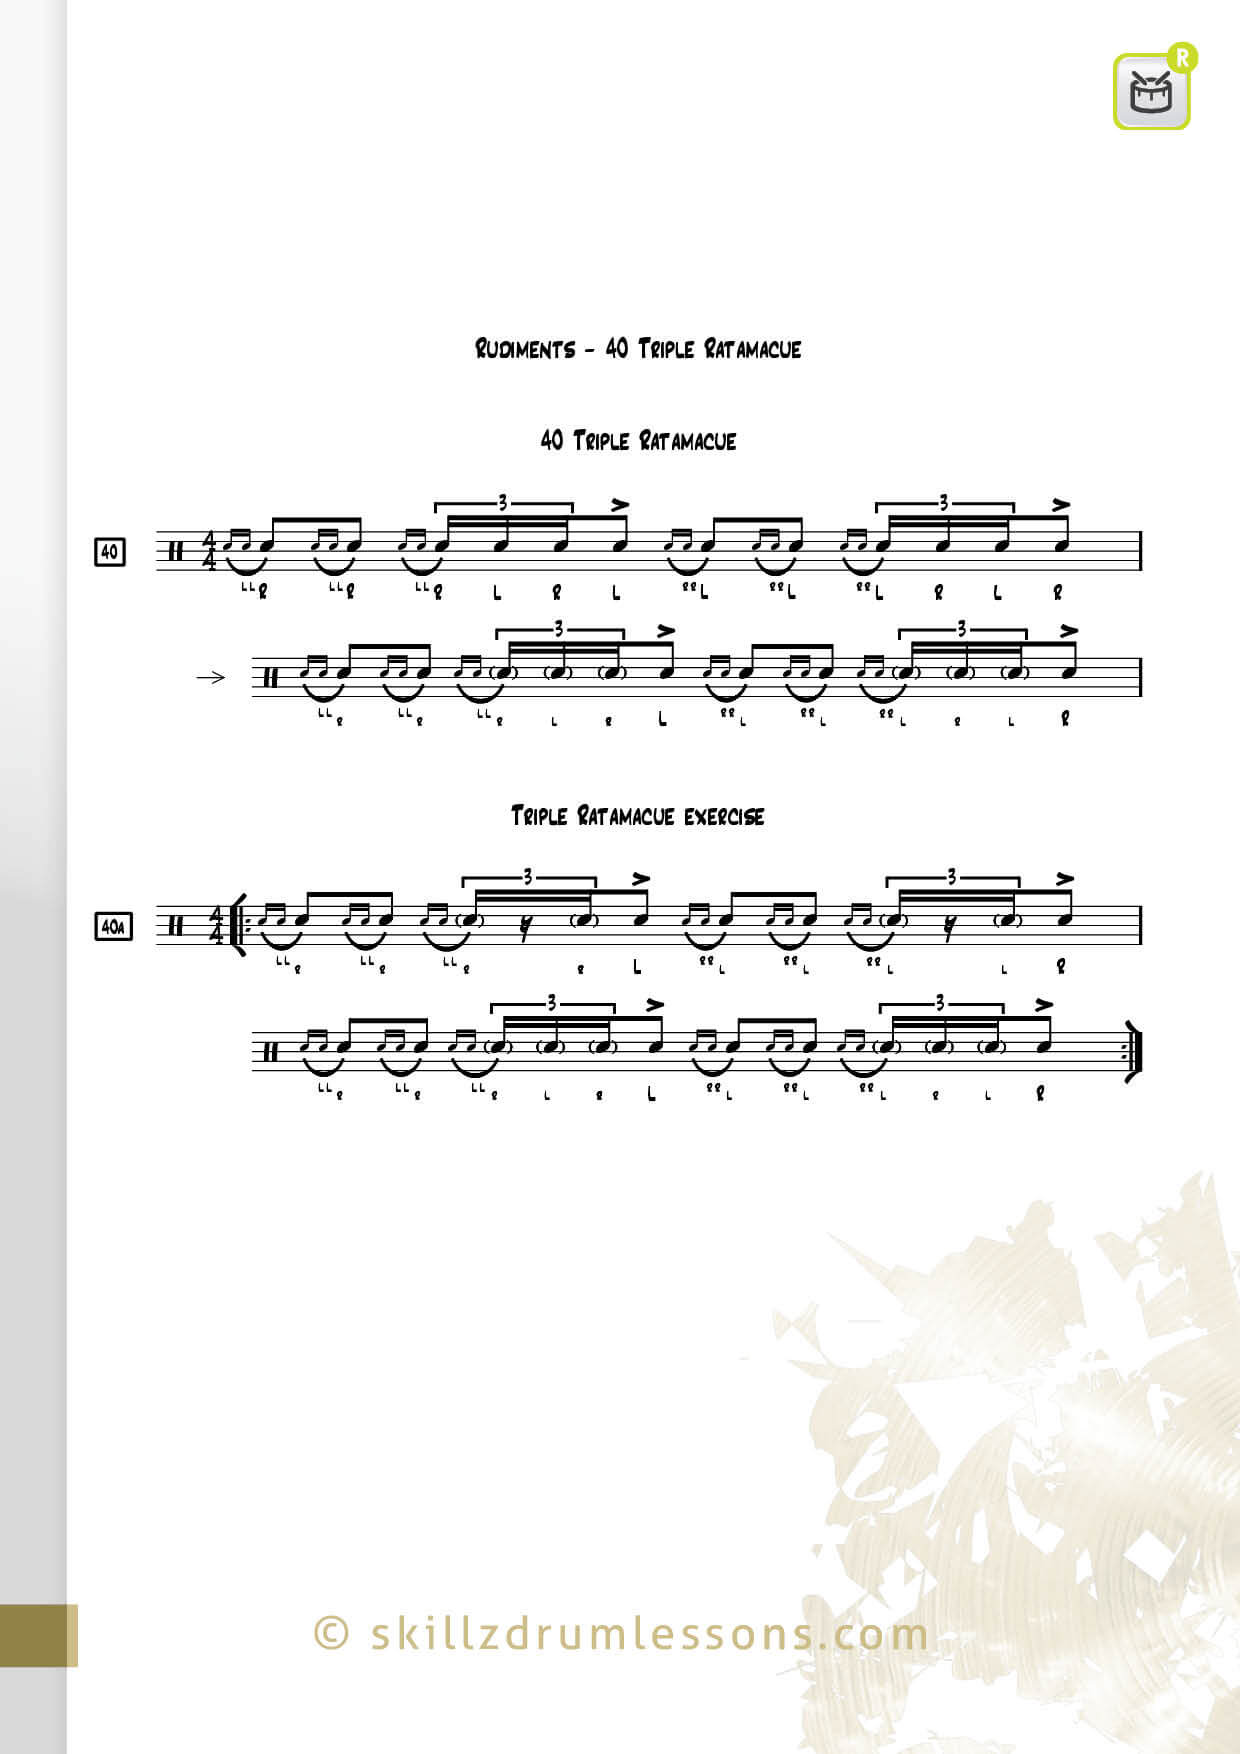 This is an image of the Official 40 Essential P.A.S. Rudiments #40 The Triple Ratamacue by Skillz Drum Lessons